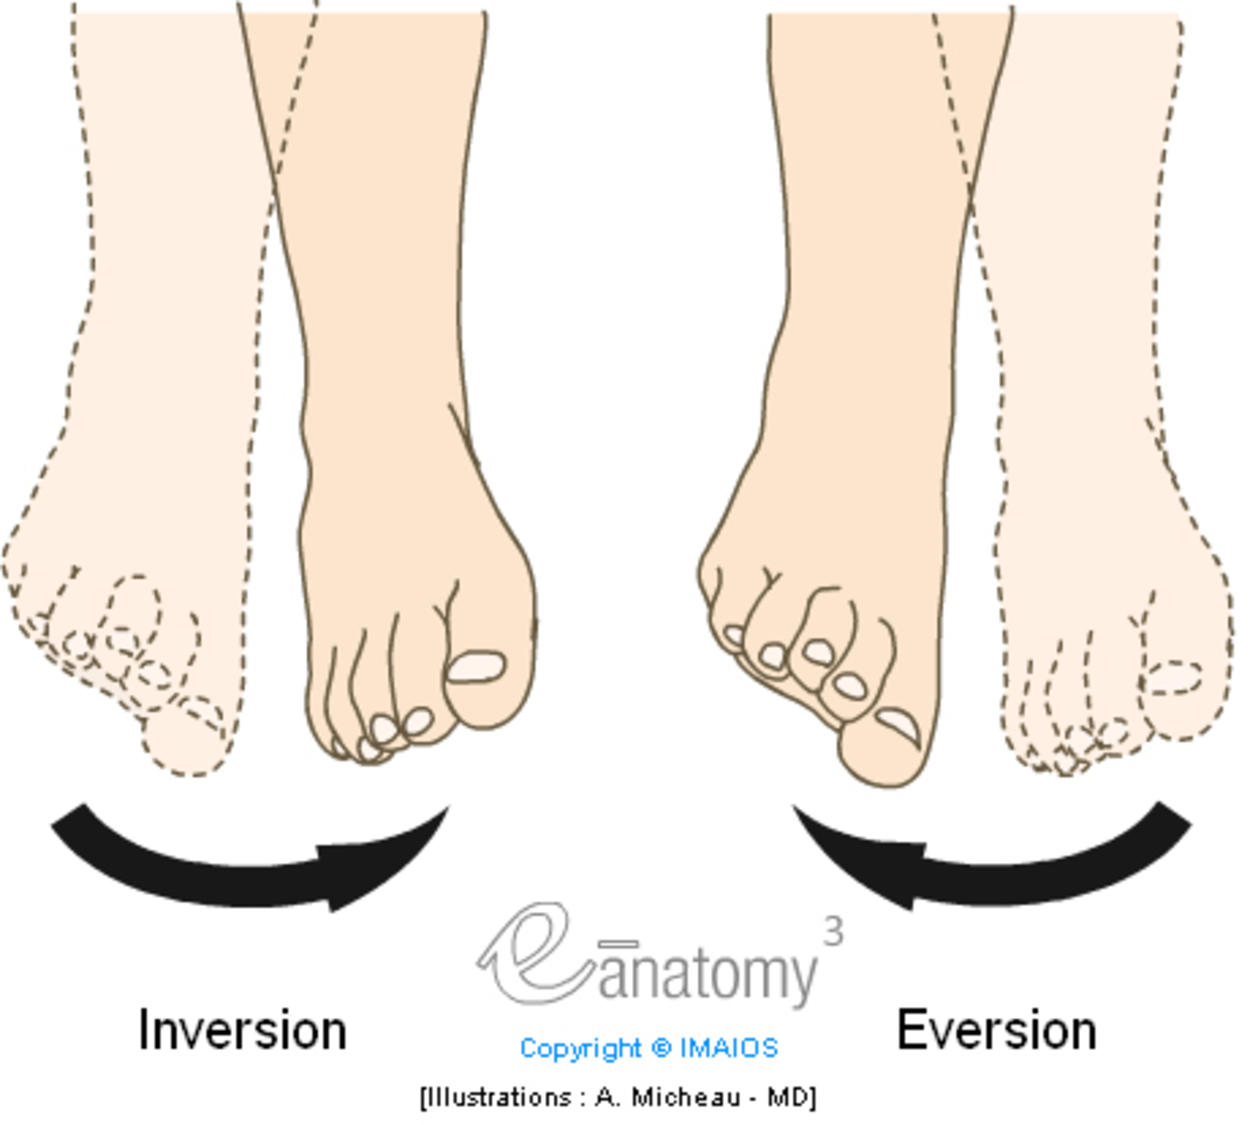 Inversion/Eversion : Mouvements, Atlas d'anatomie, Illustration médicale